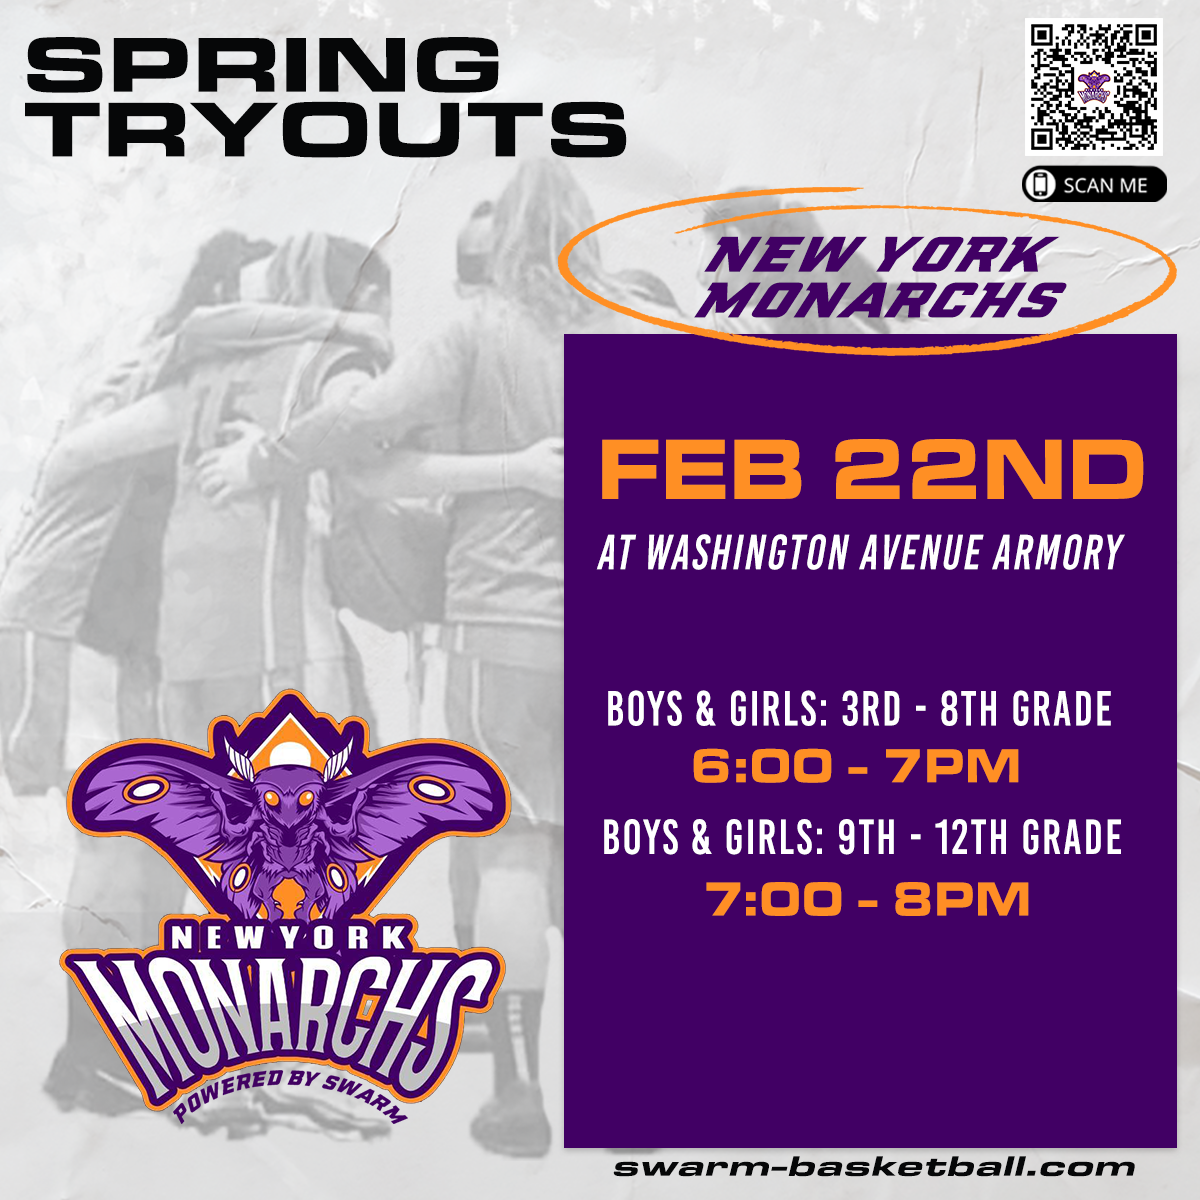 Spring21Tryouts_Monarchs